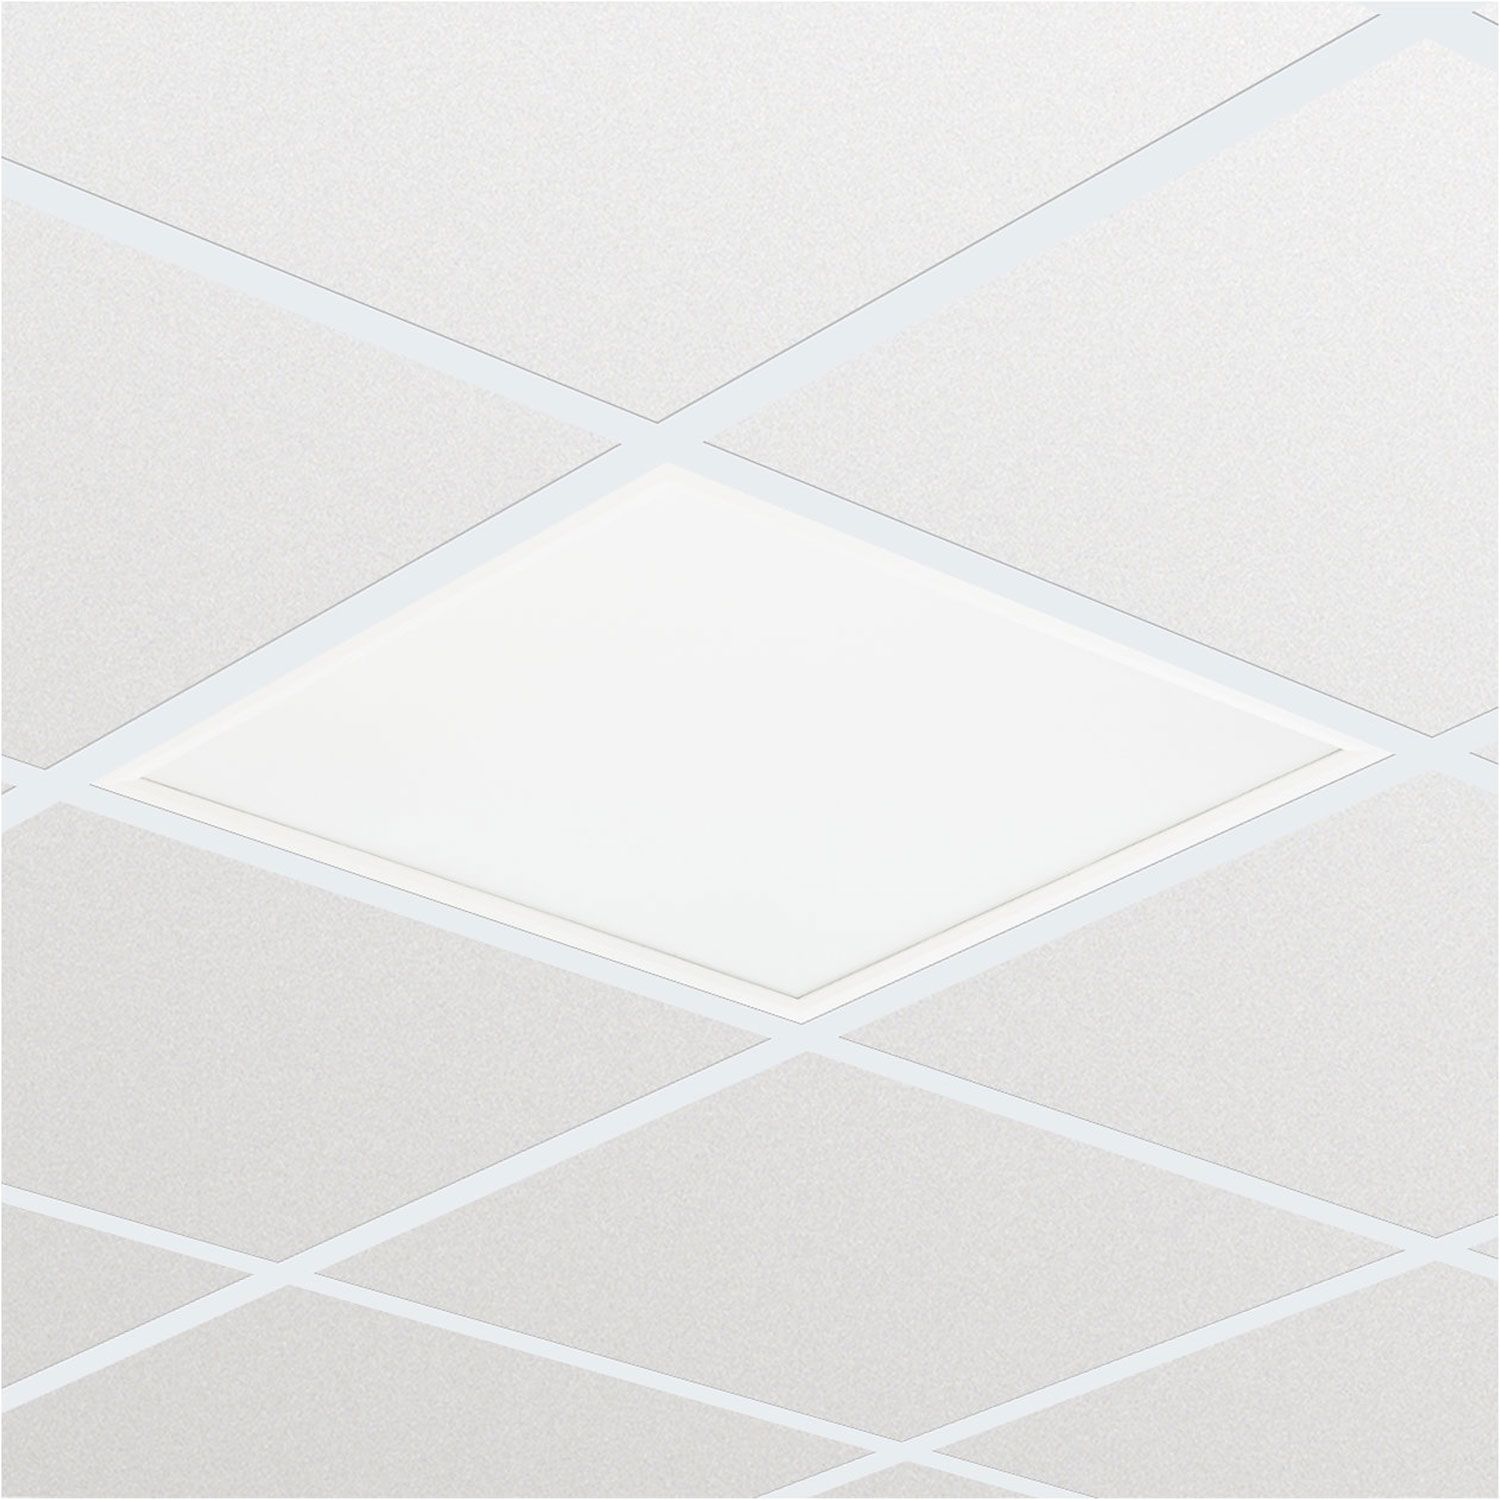 Philips LED Panel CoreLine RC132V G4 60x60cm 3000K 3400lm UGR <19 | Dali Dimmable -  Warm White - Replaces 4x18W